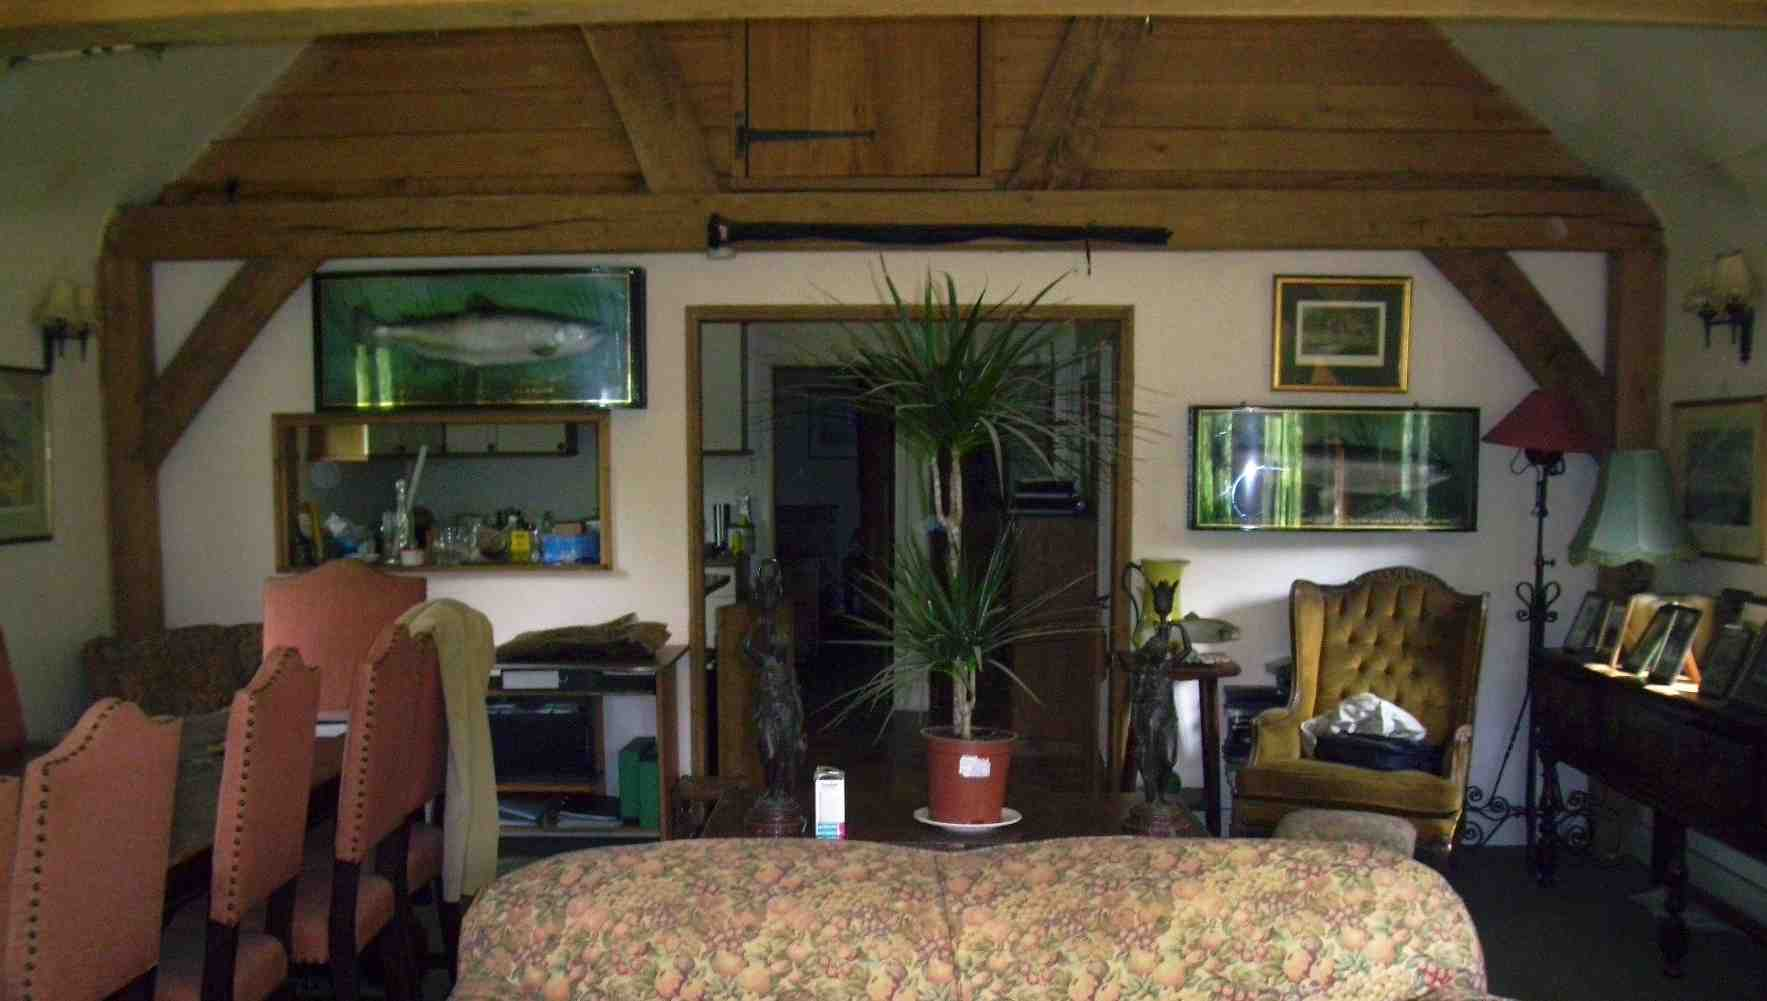 holiday cabin interior heathfield sussex